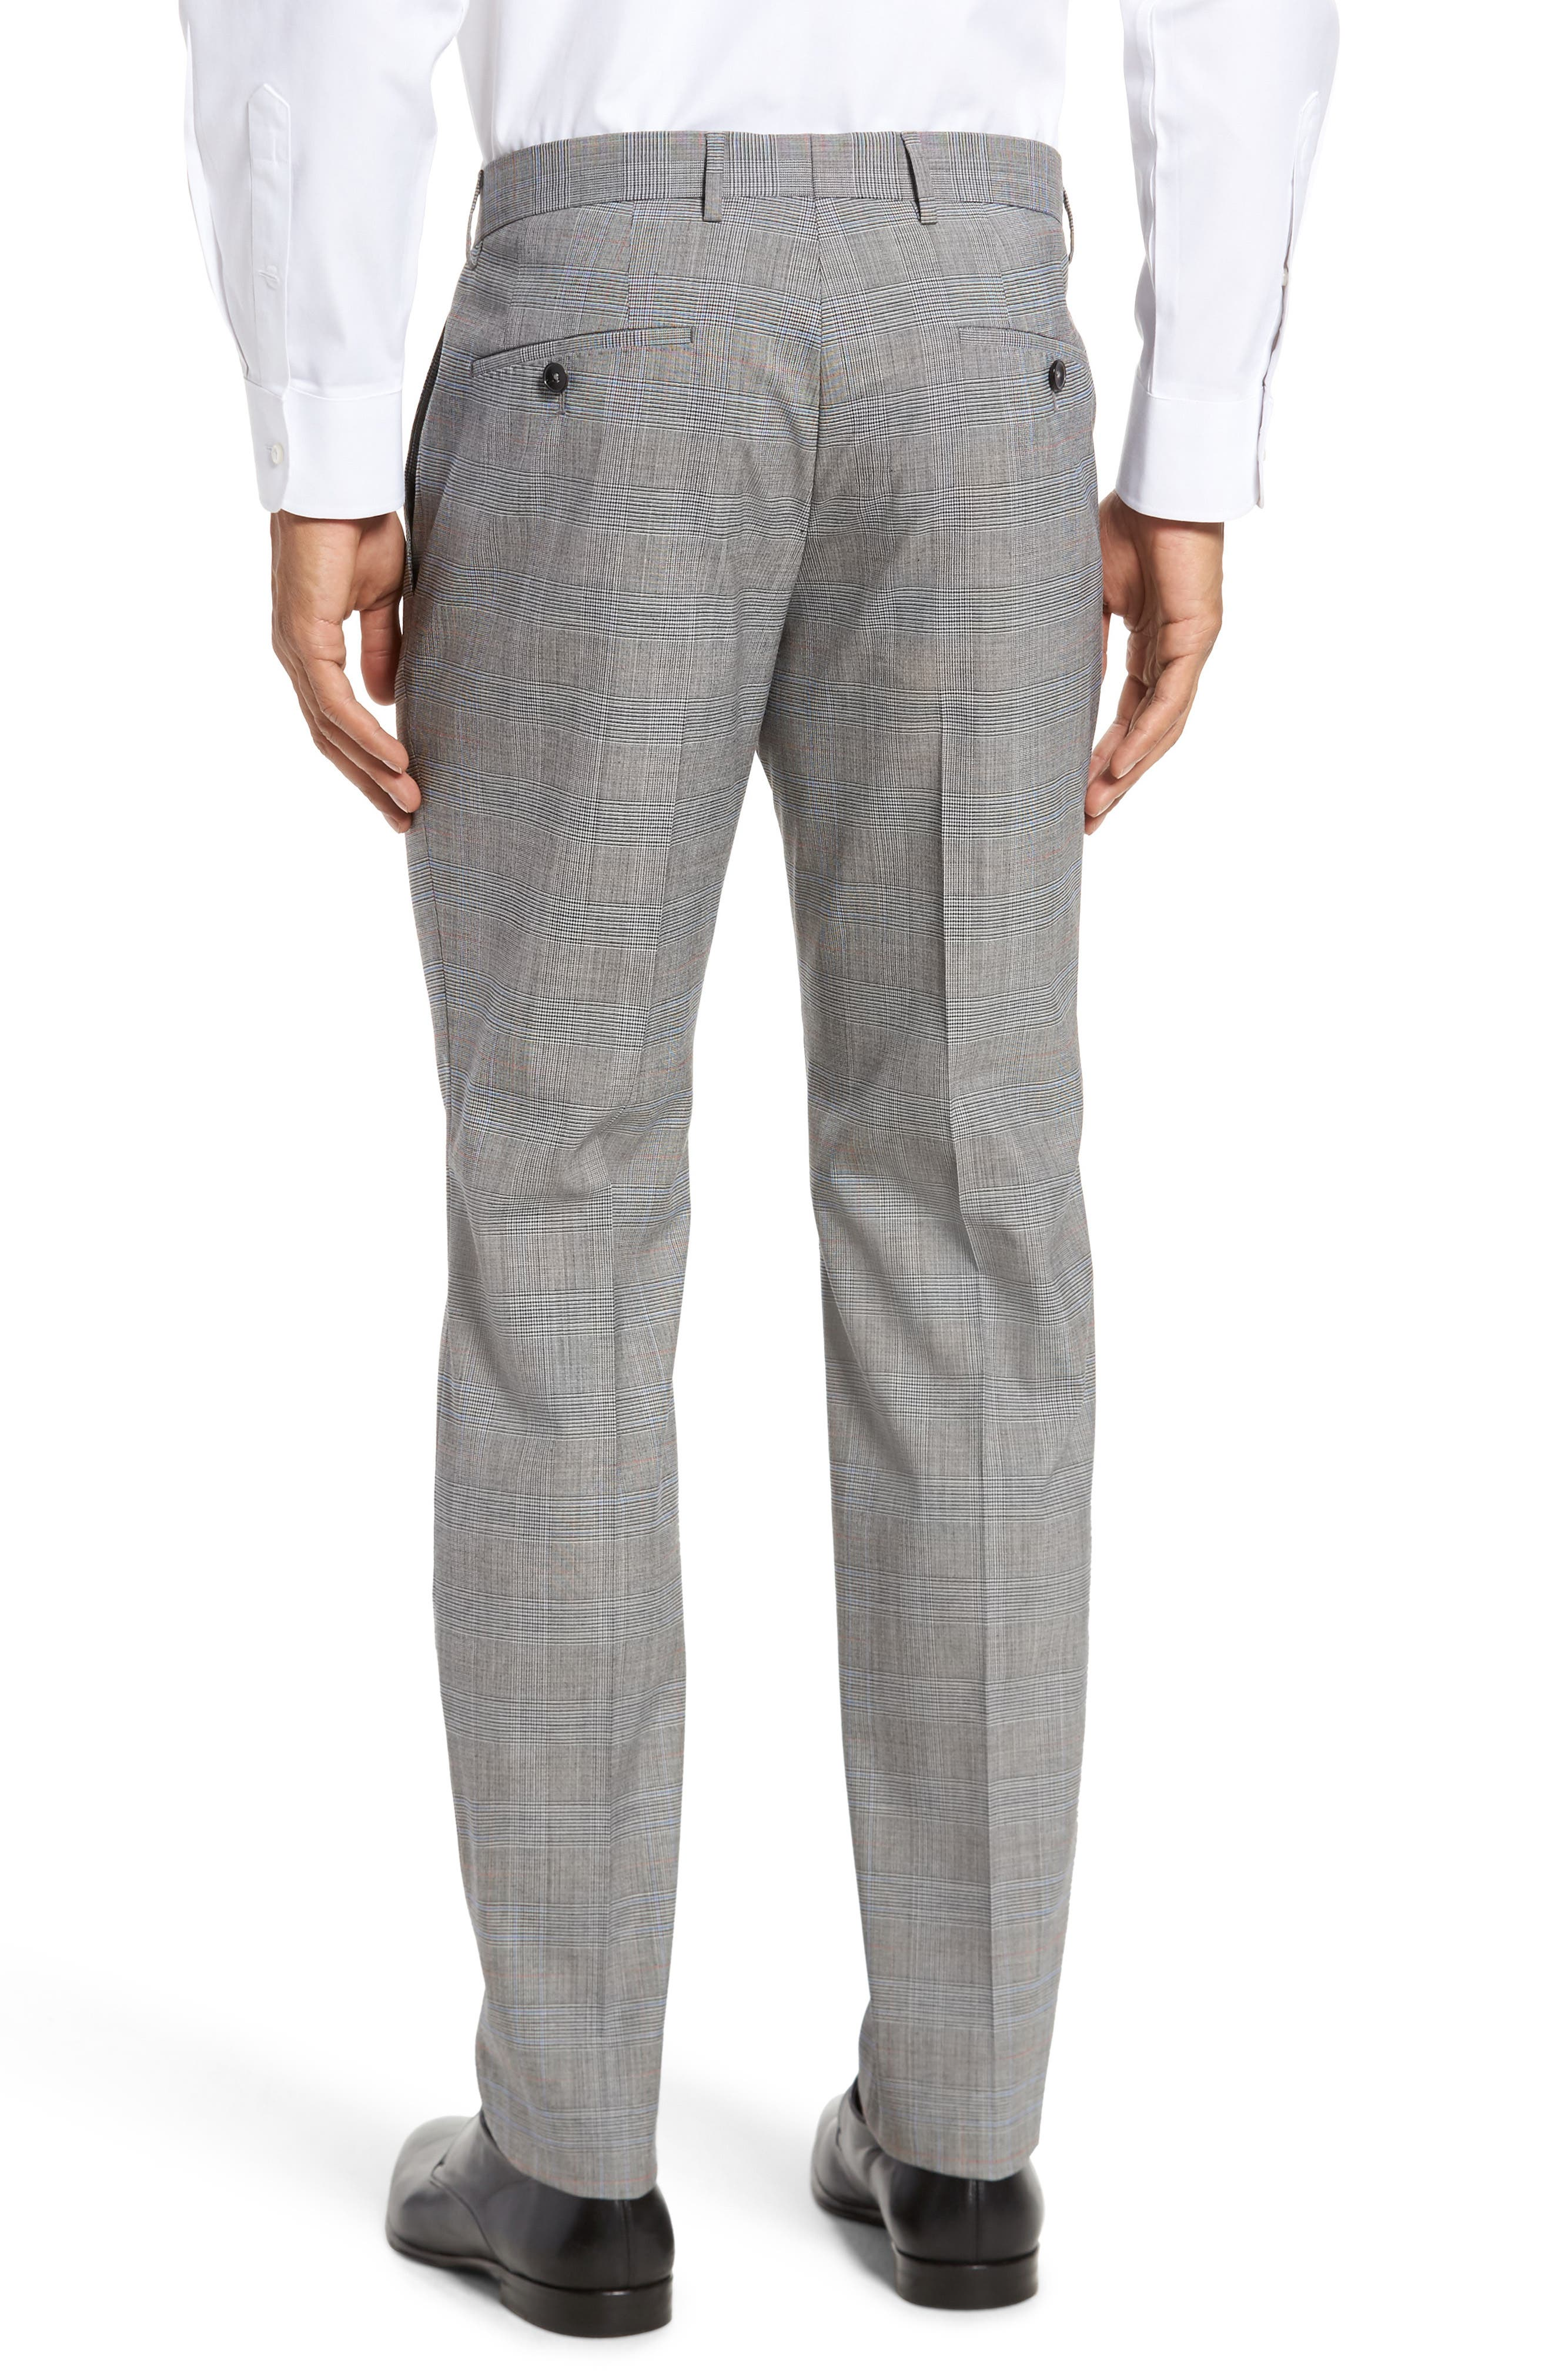 Benso Flat Front Plaid Wool Blend Trousers,                             Alternate thumbnail 3, color,                             061